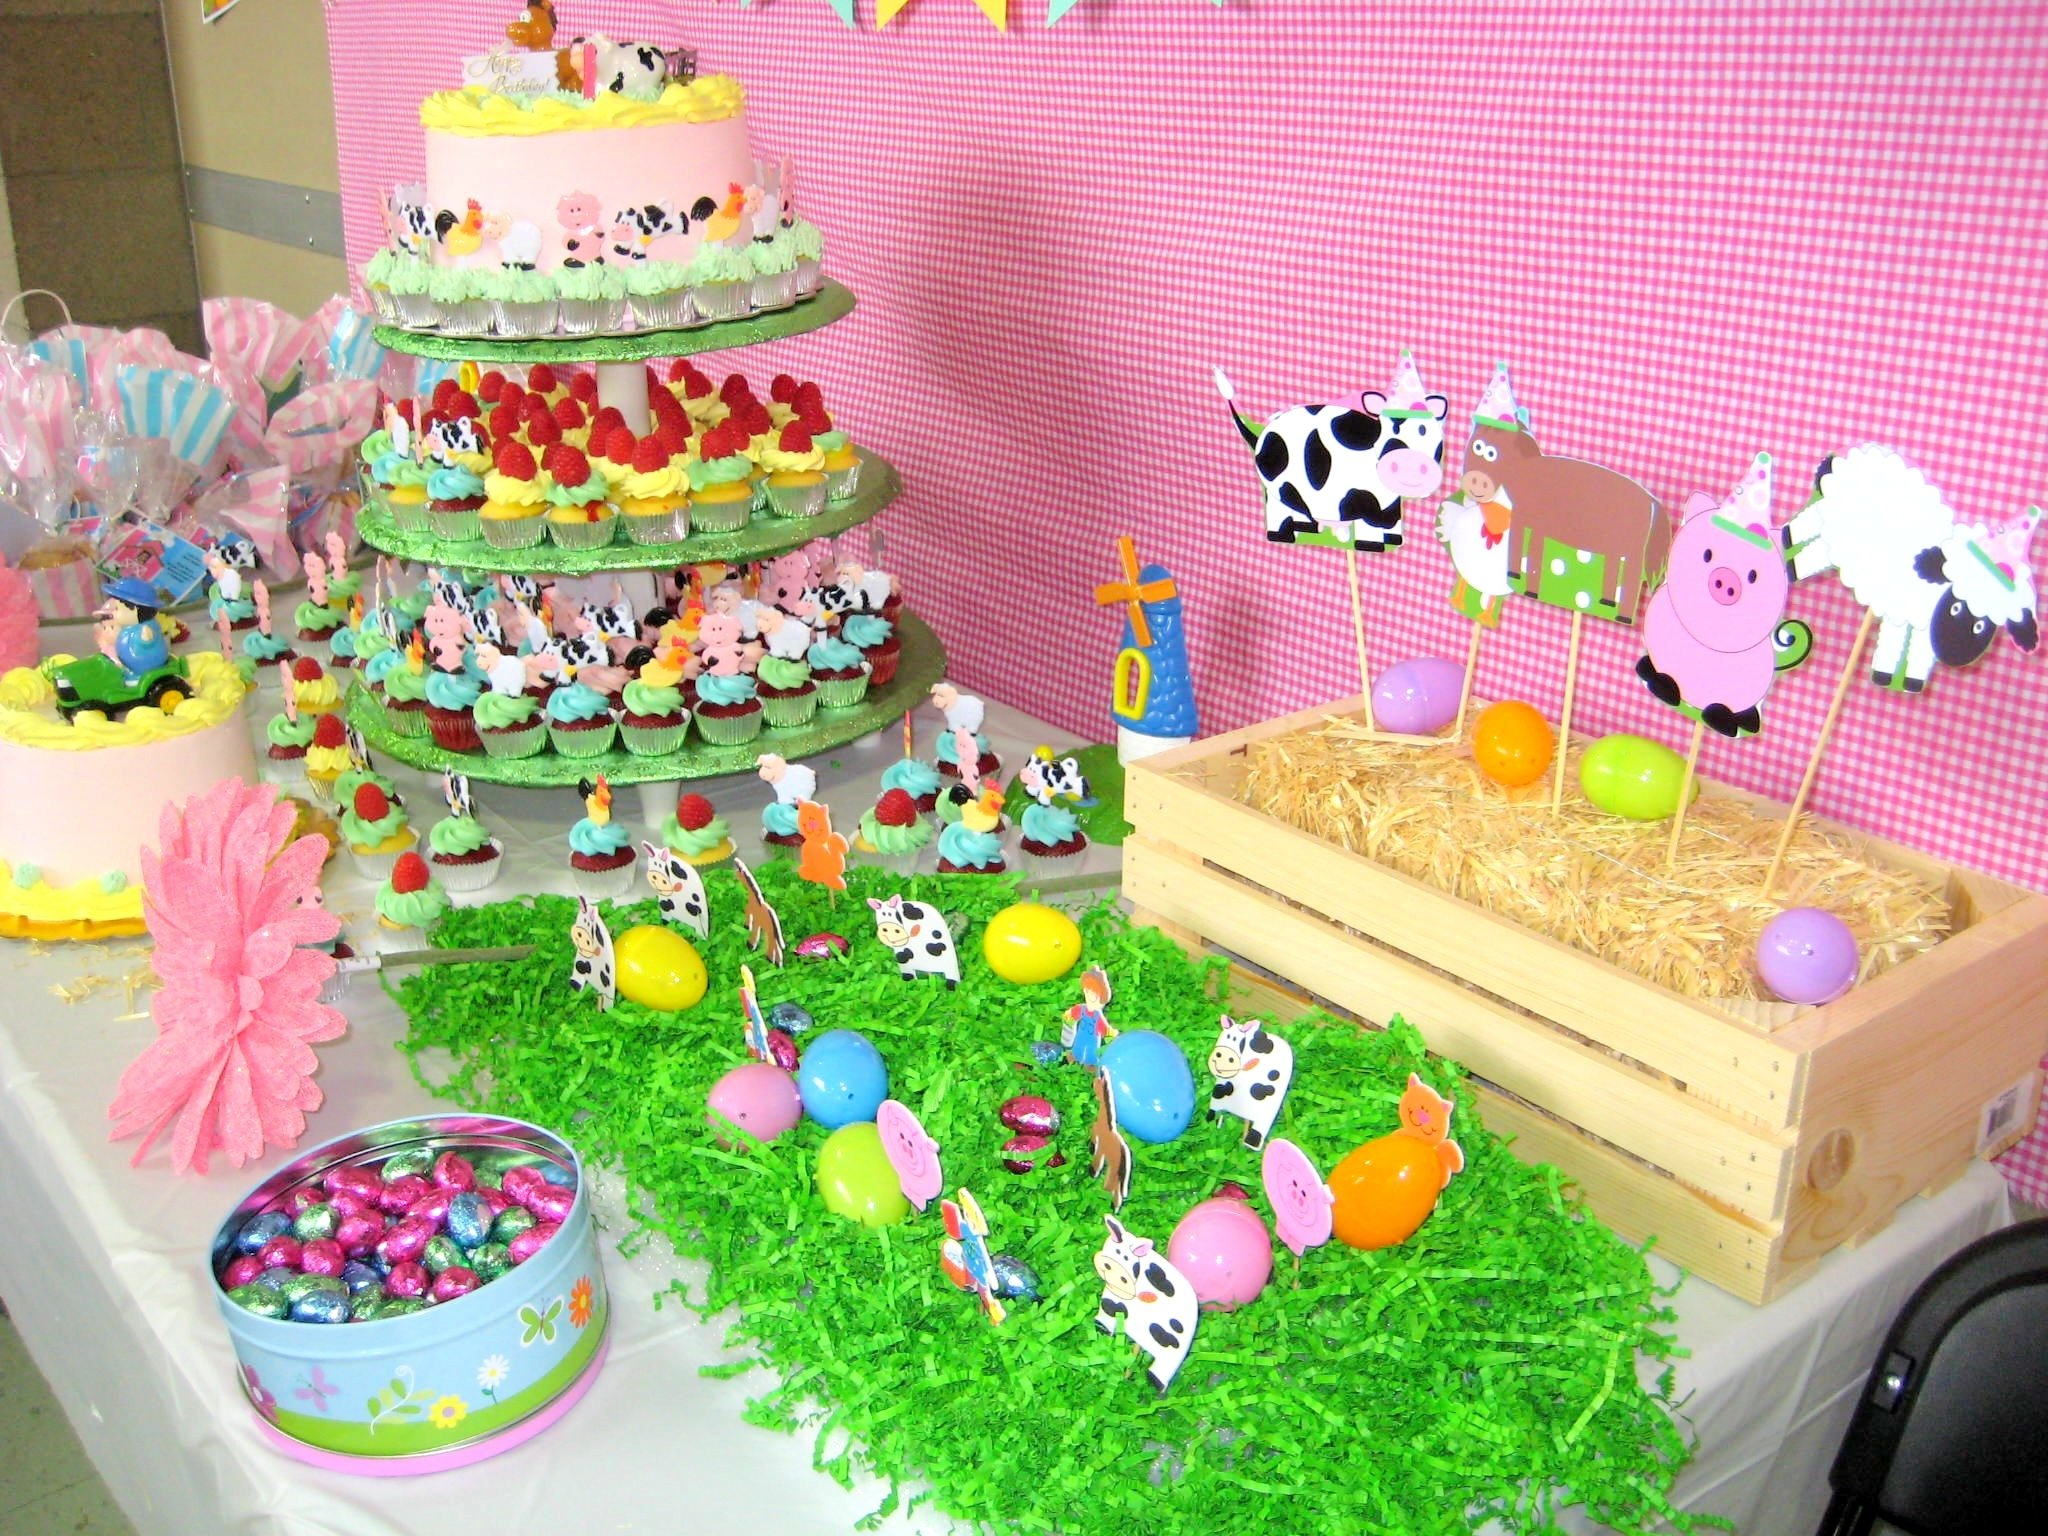 10 Trendy 13 Year Old Birthday Party Ideas For Boys local oc spotlight the diy budget birthday party challenge alicia 2 2020